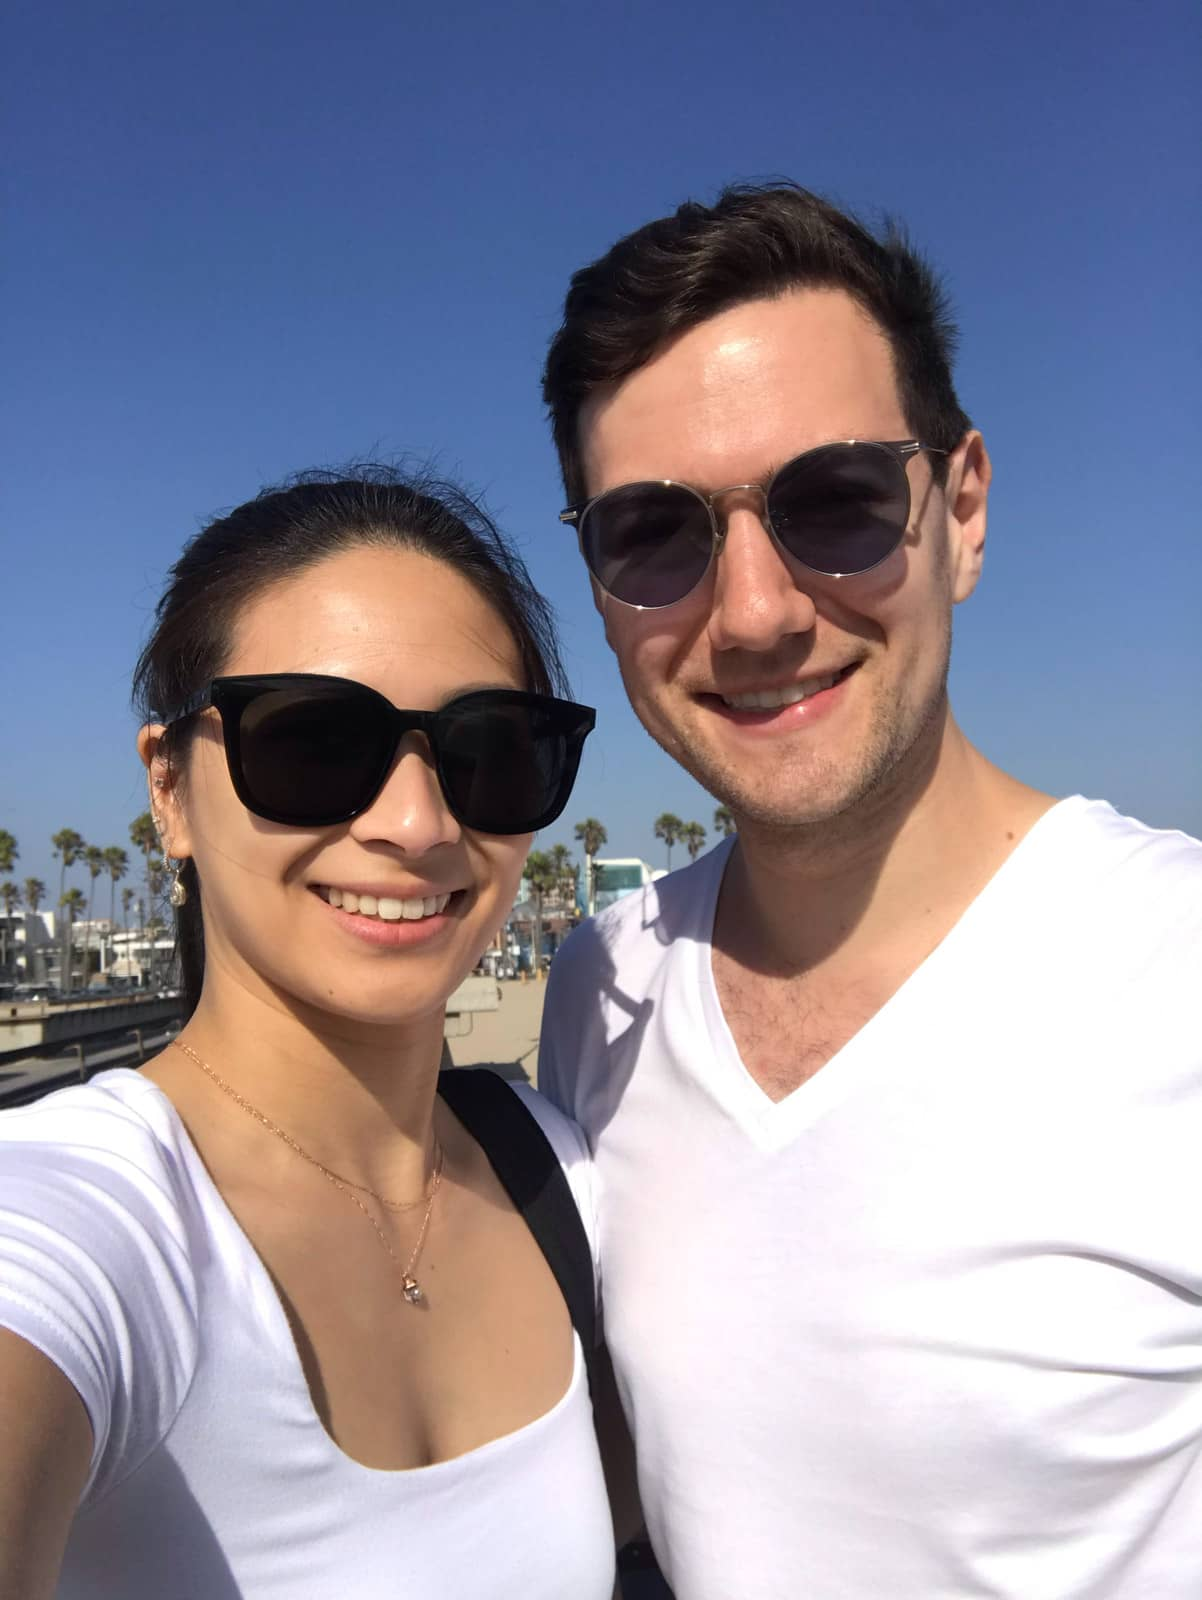 A selfie of a man and woman, both wearing white shirts and both wearing sunglasses